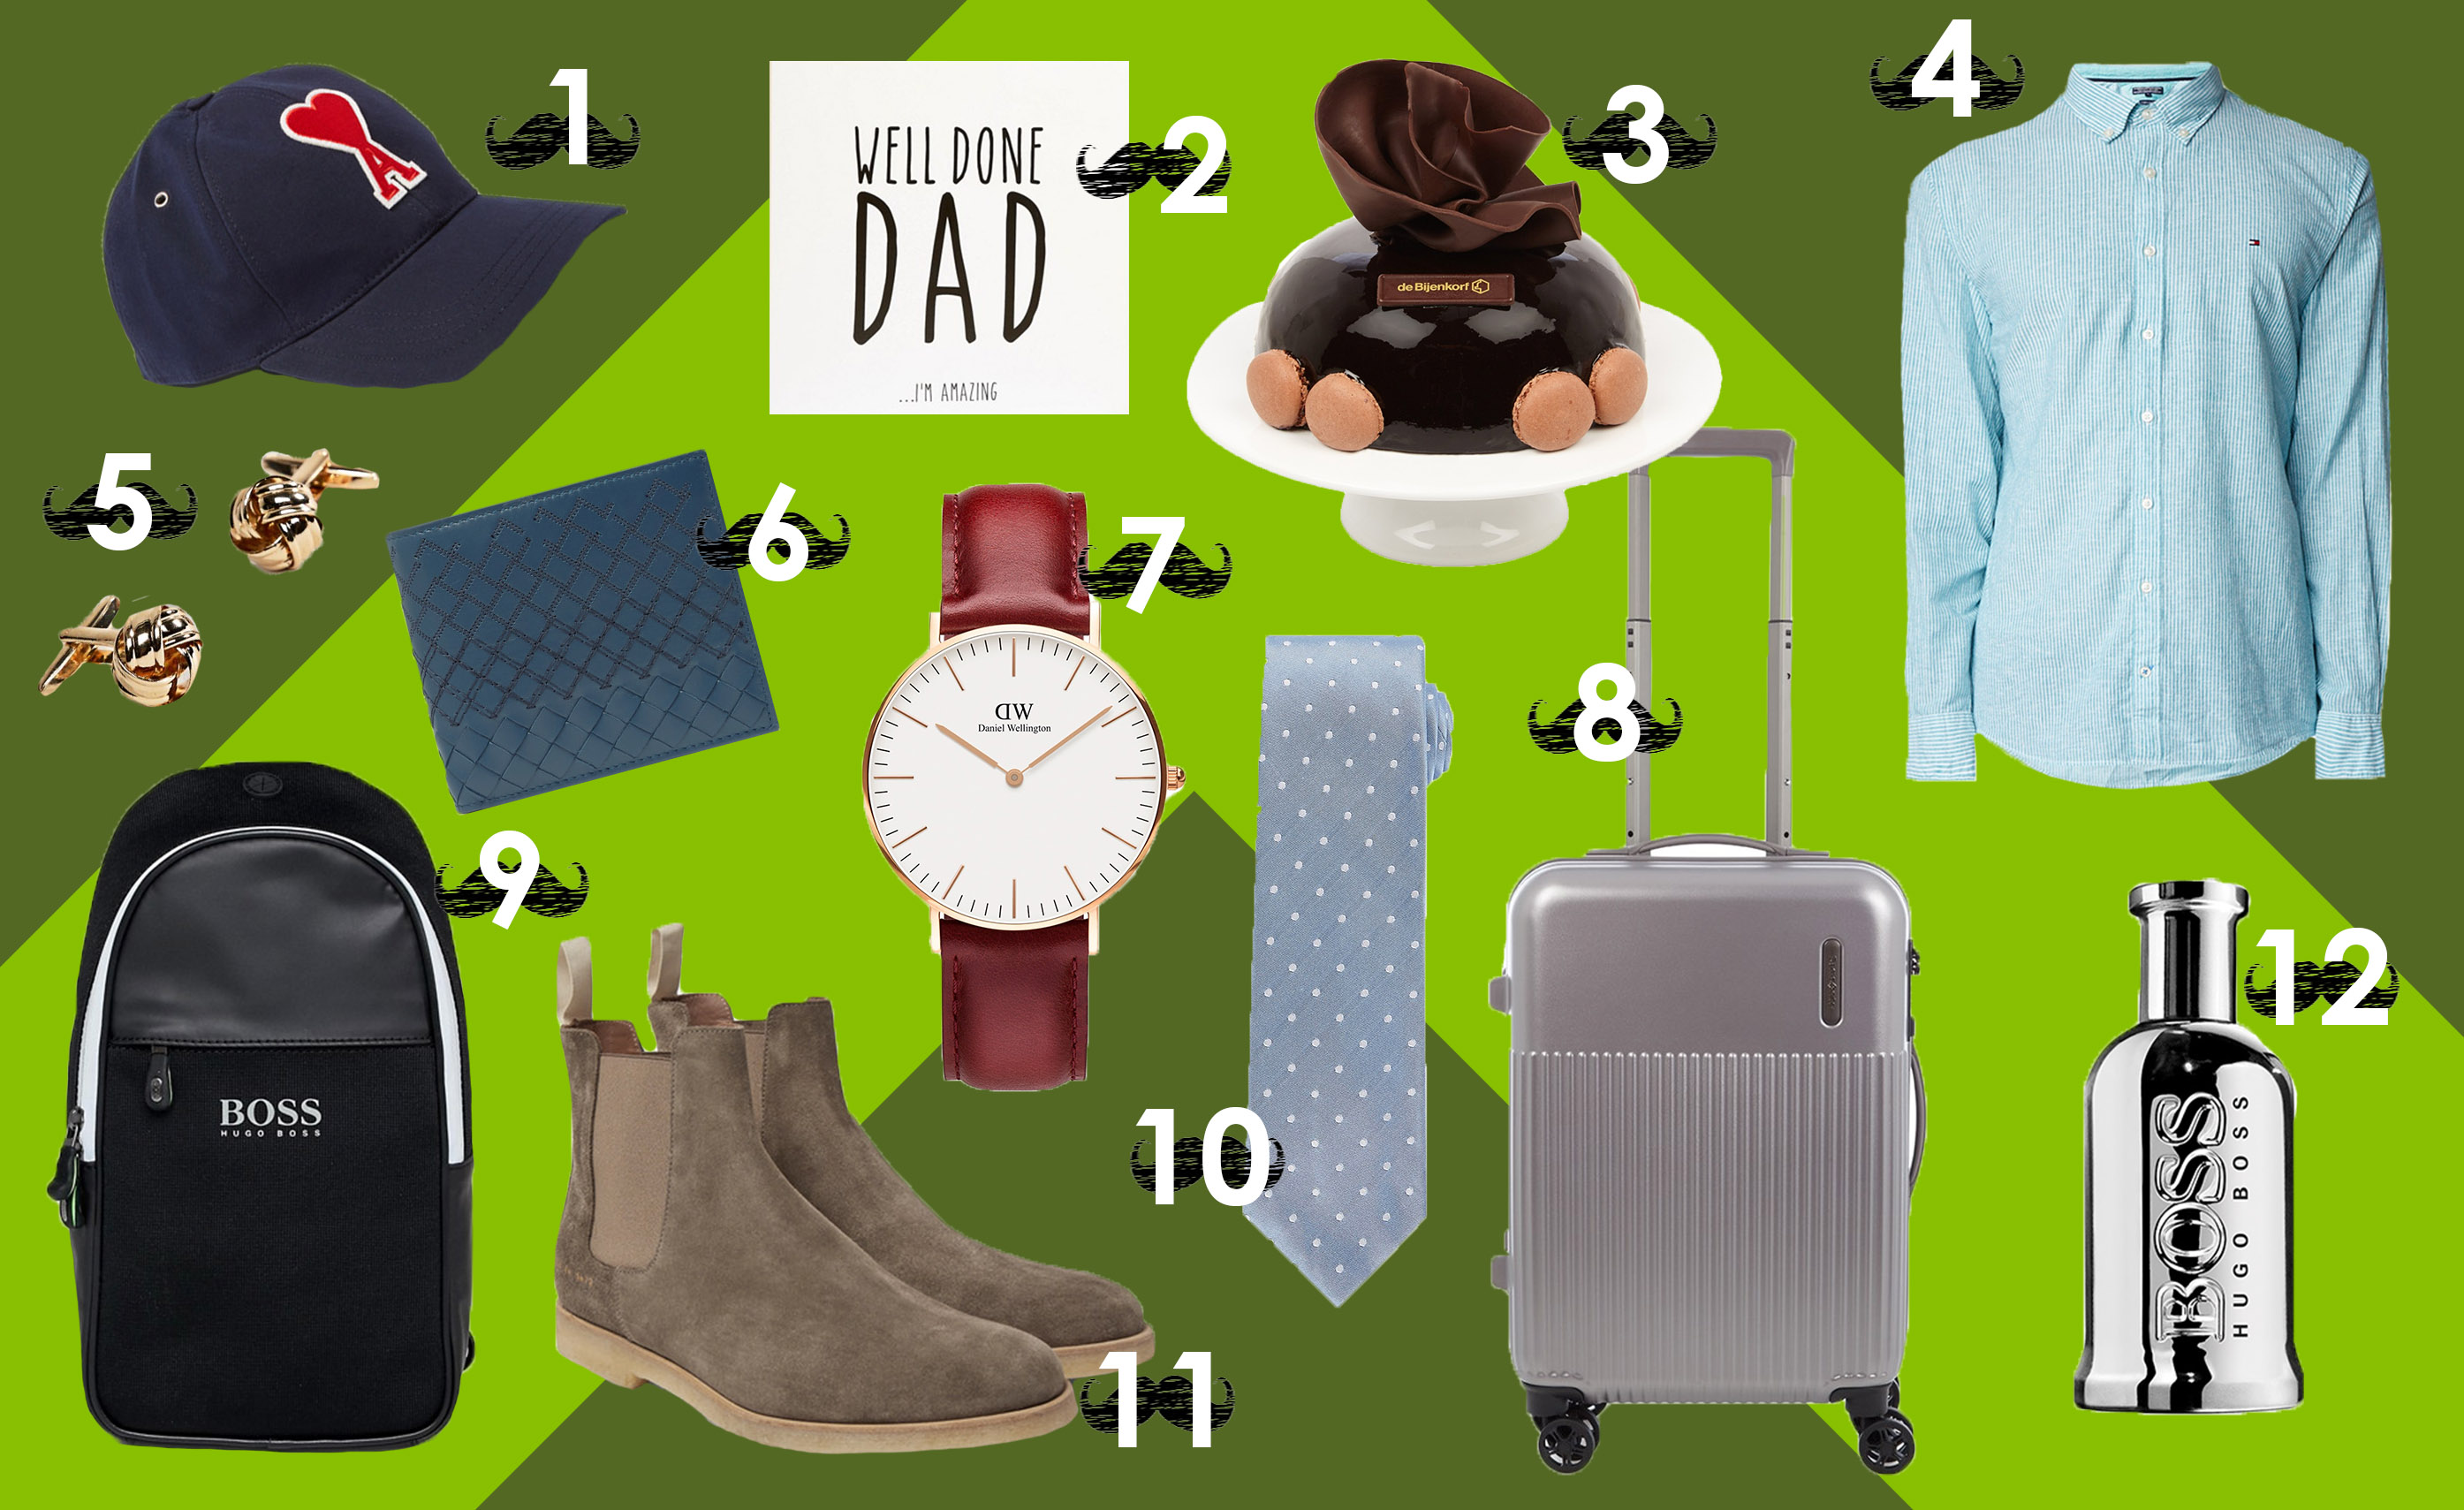 LAST CALL: FATHER'S DAY PRESENT